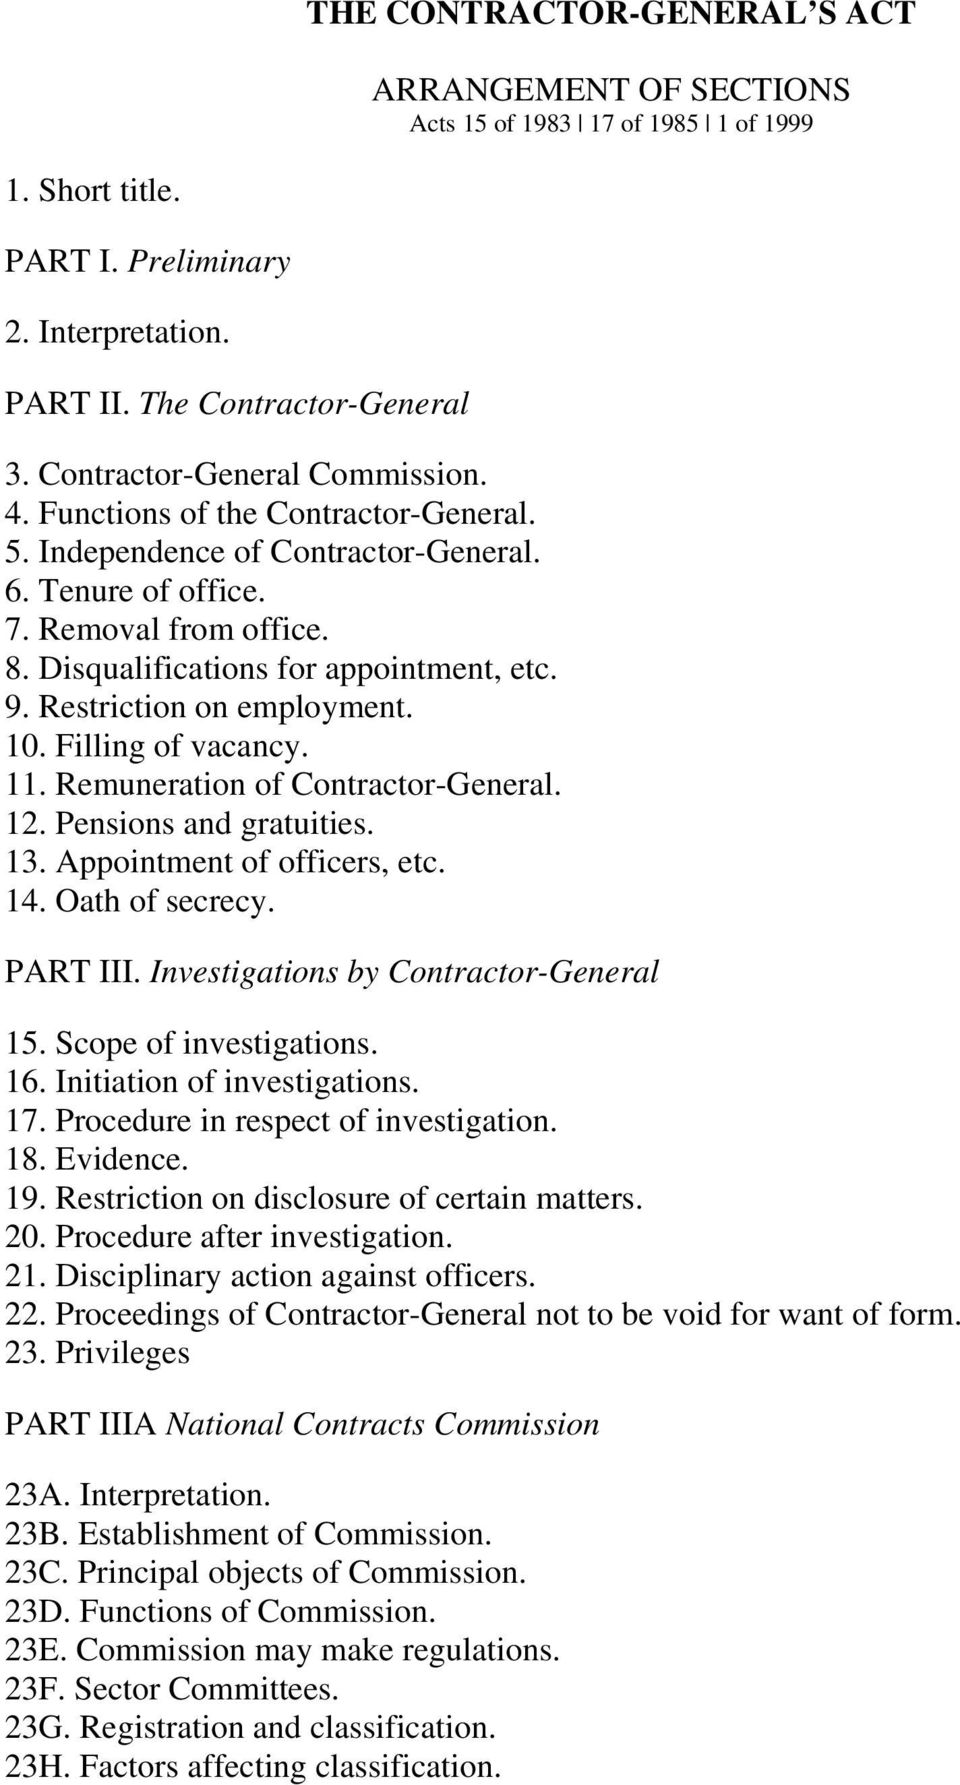 Restriction on employment. 10. Filling of vacancy. 11. Remuneration of Contractor-General. 12. Pensions and gratuities. 13. Appointment of officers, etc. 14. Oath of secrecy. PART III.